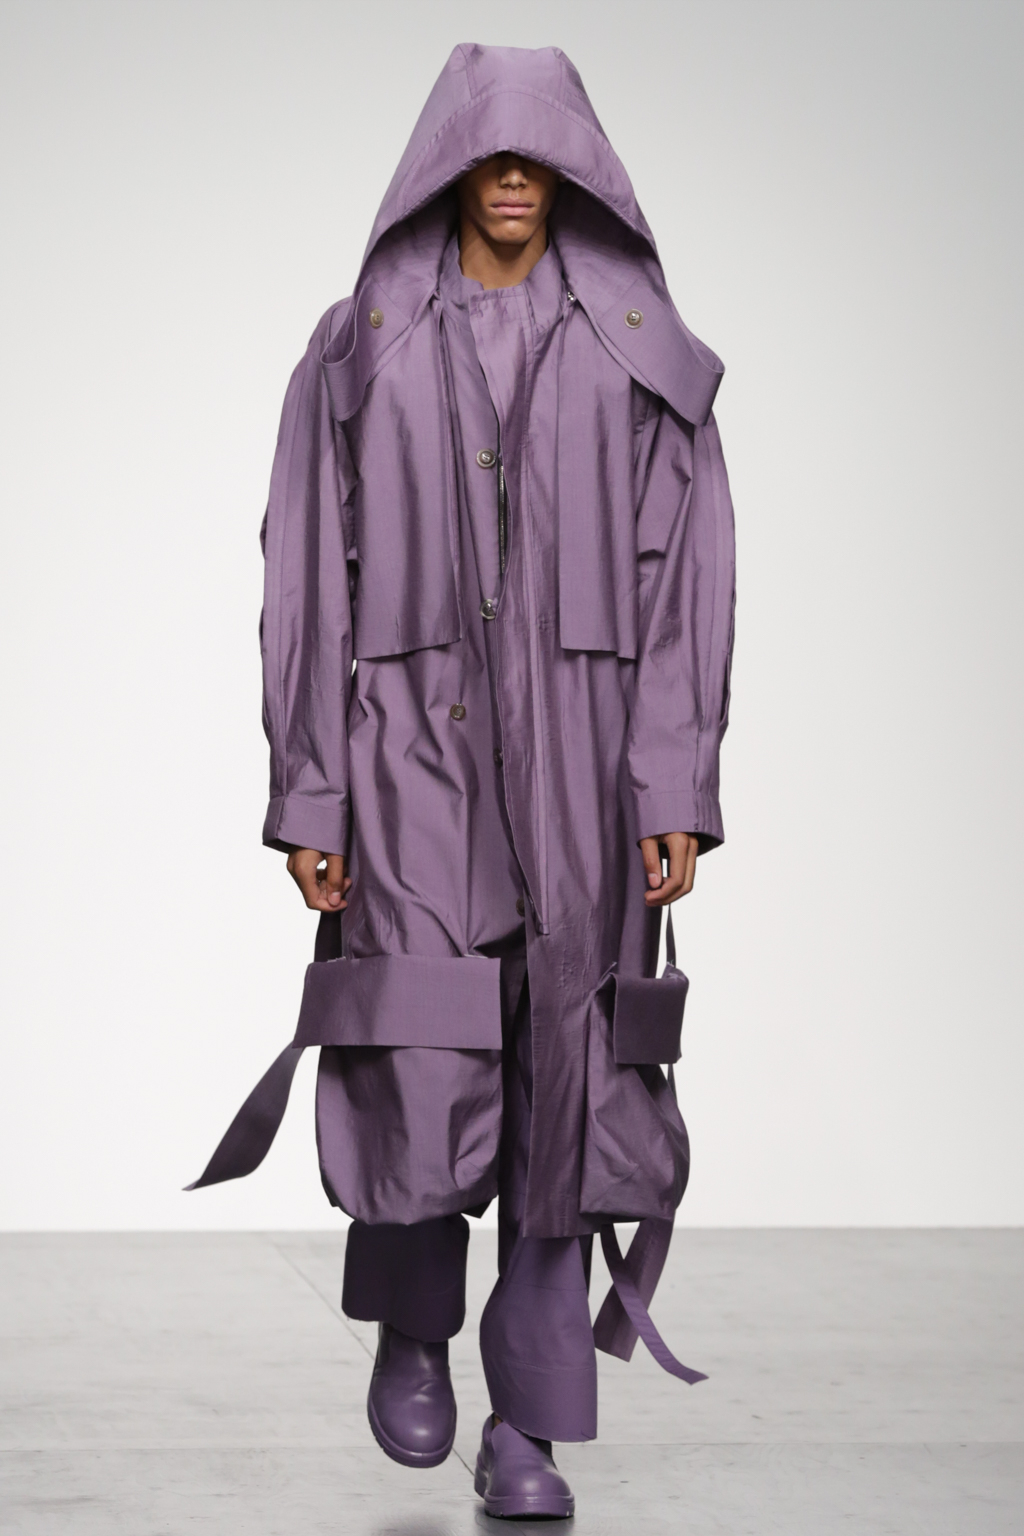 LFWM SS18 - Pronounce presented by GQ China - Kimberley Archer - The Upcoming - 18